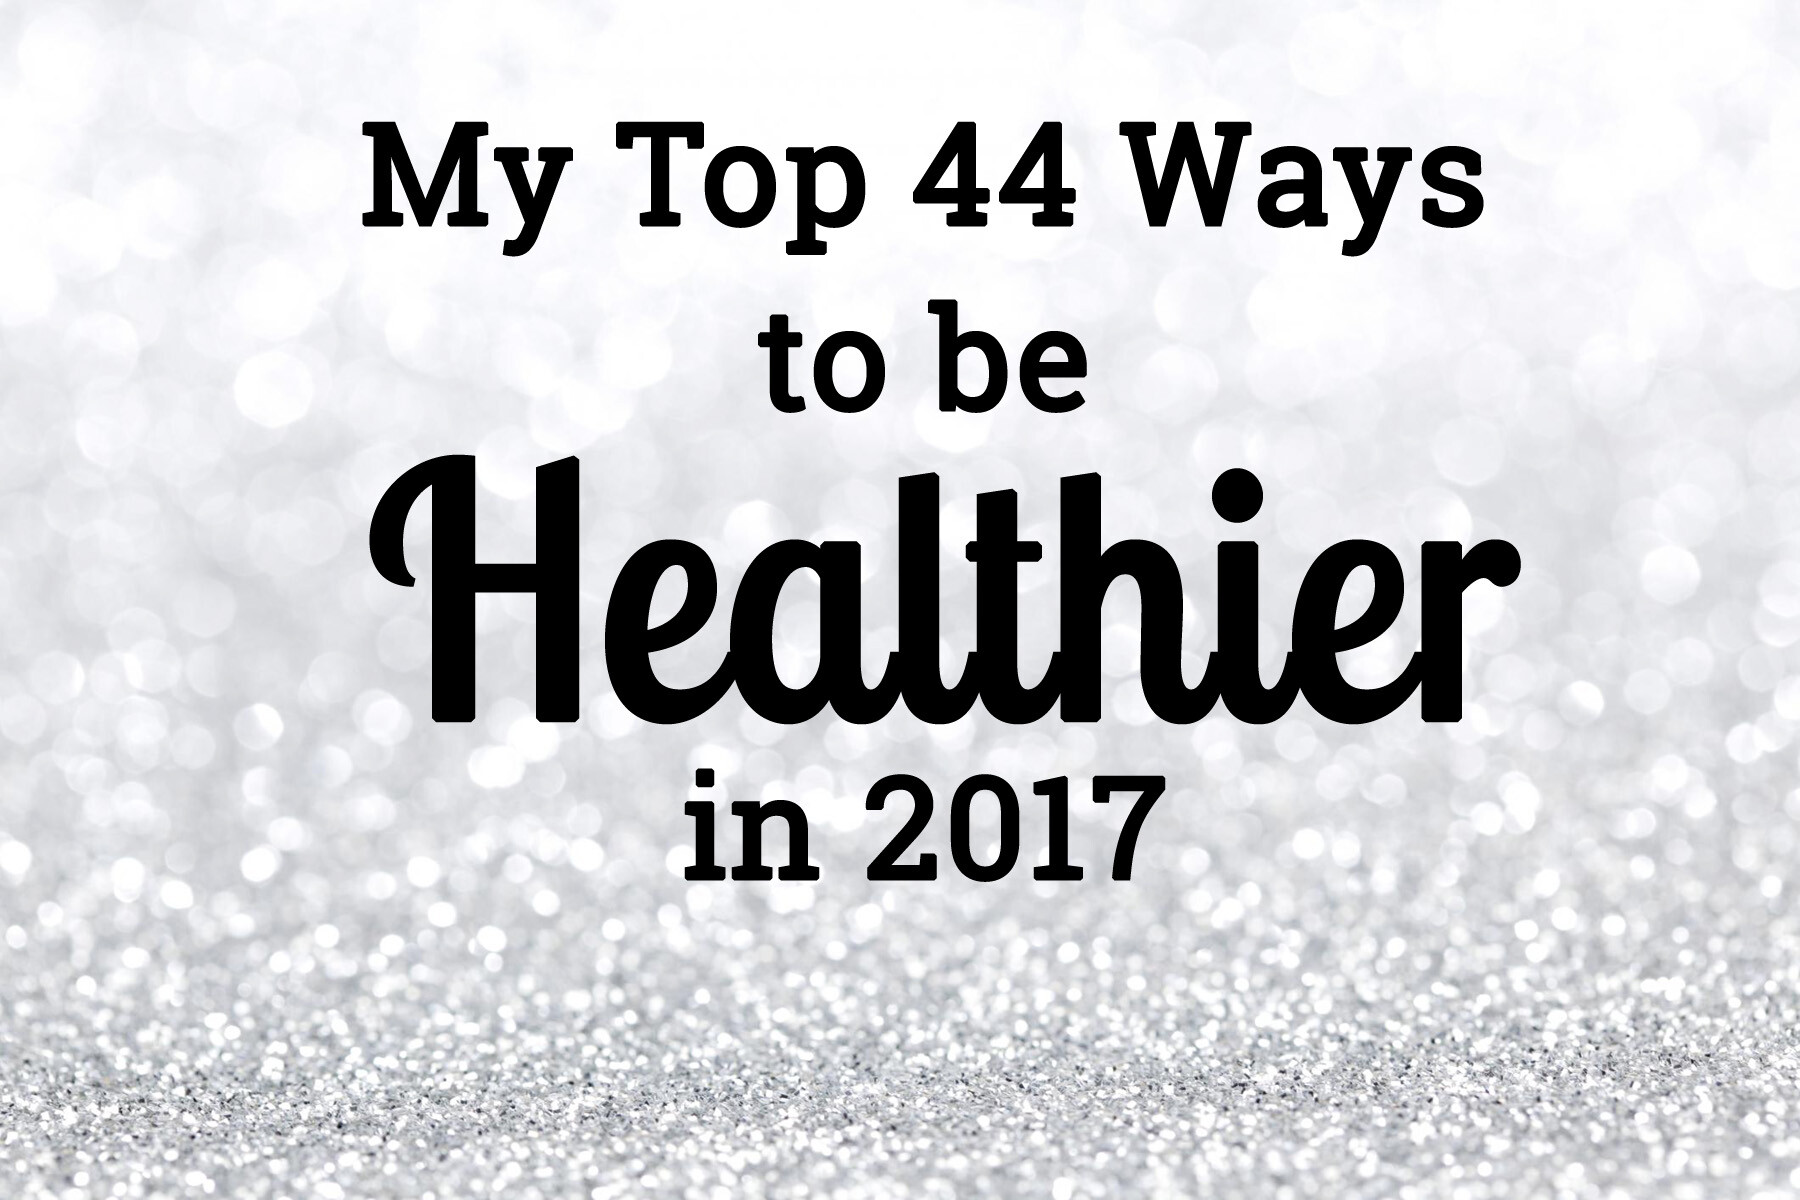 My Top 44 Ways to be Healthier in 2017